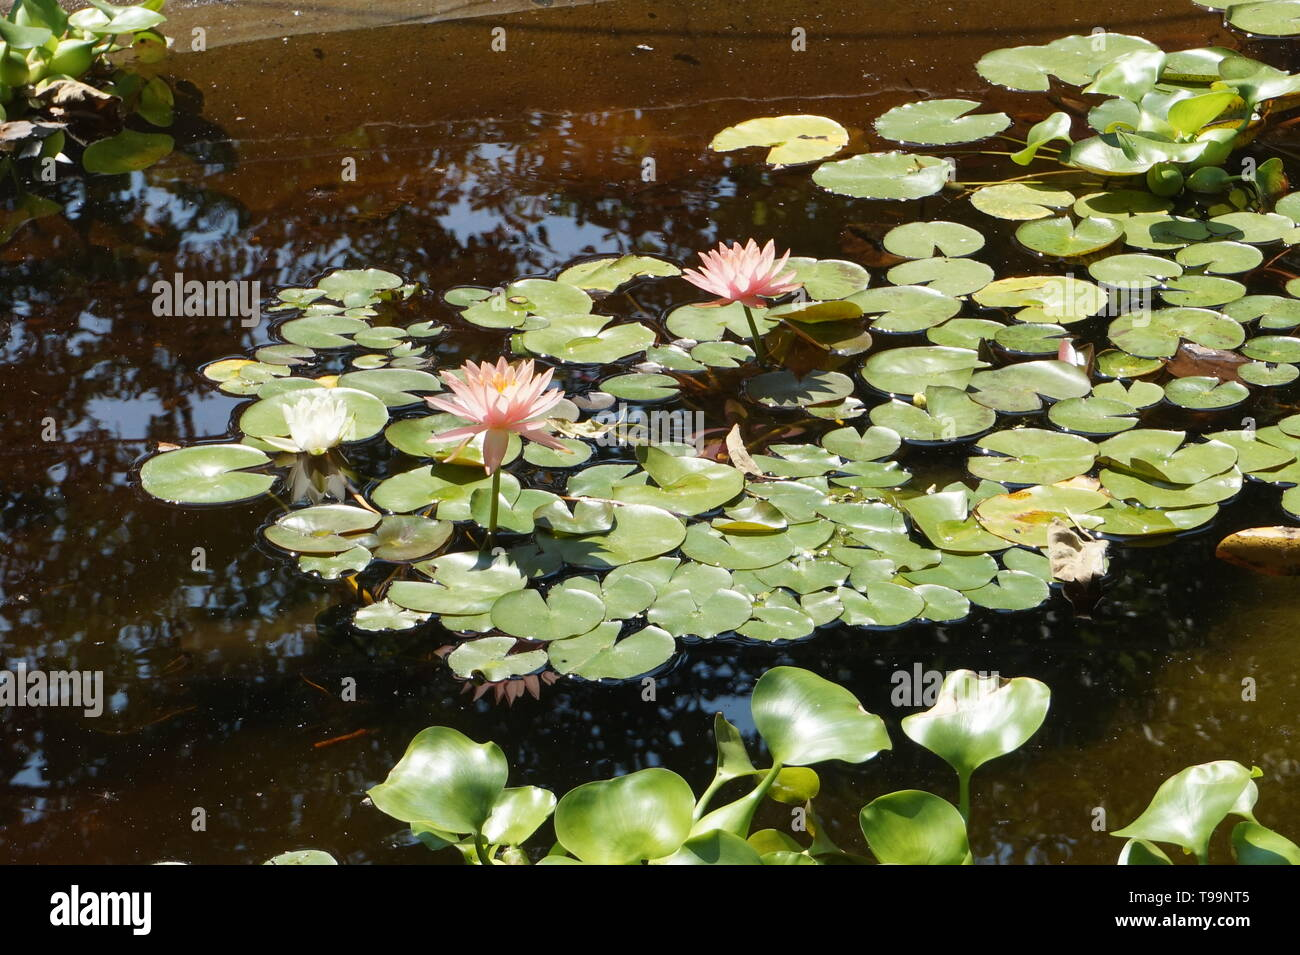 wonderful water flovers and green leaf in the water pool. Stock Photo